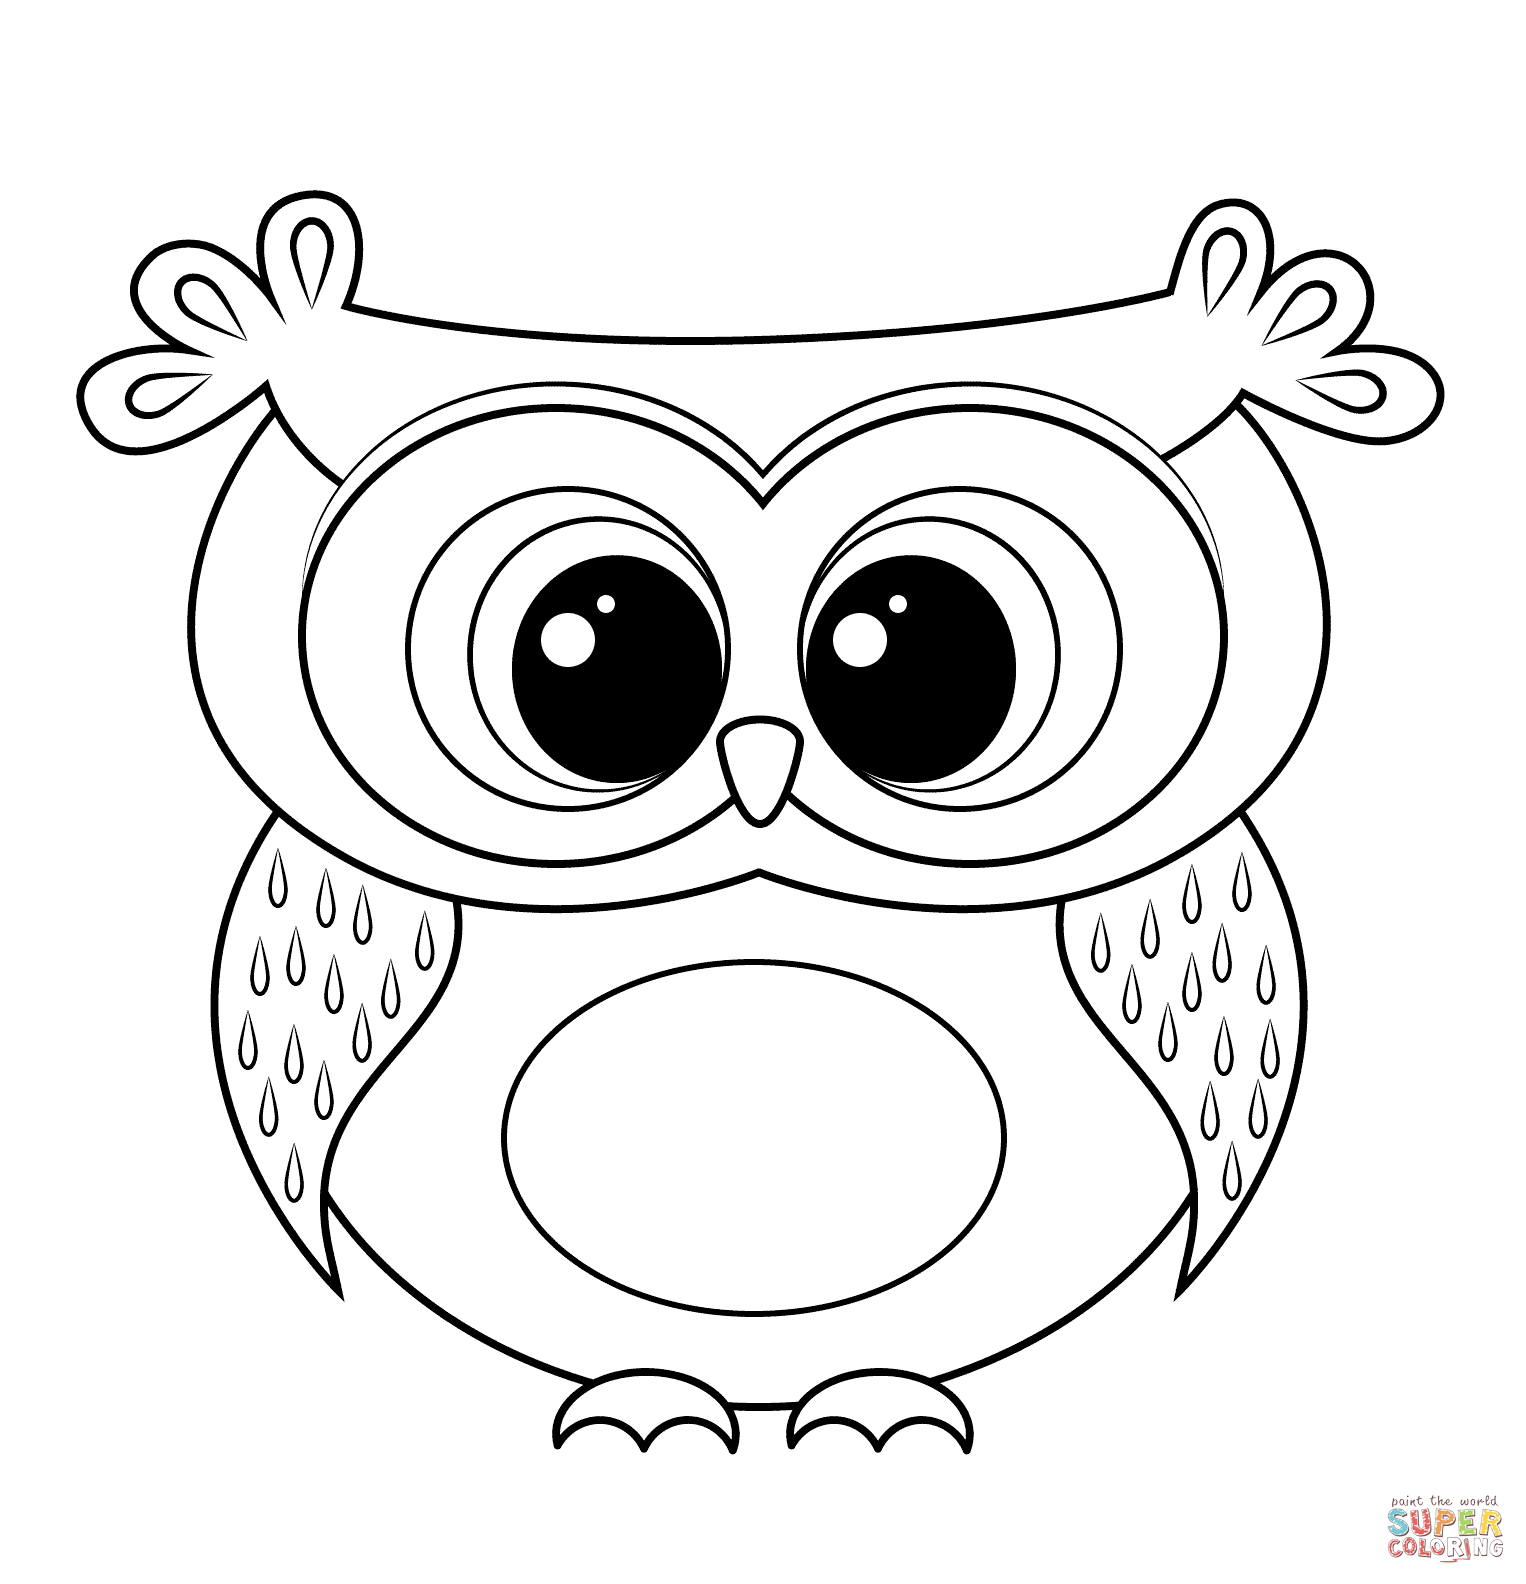 picture of owls to color cartoon owl coloring page free printable coloring pages of to color picture owls